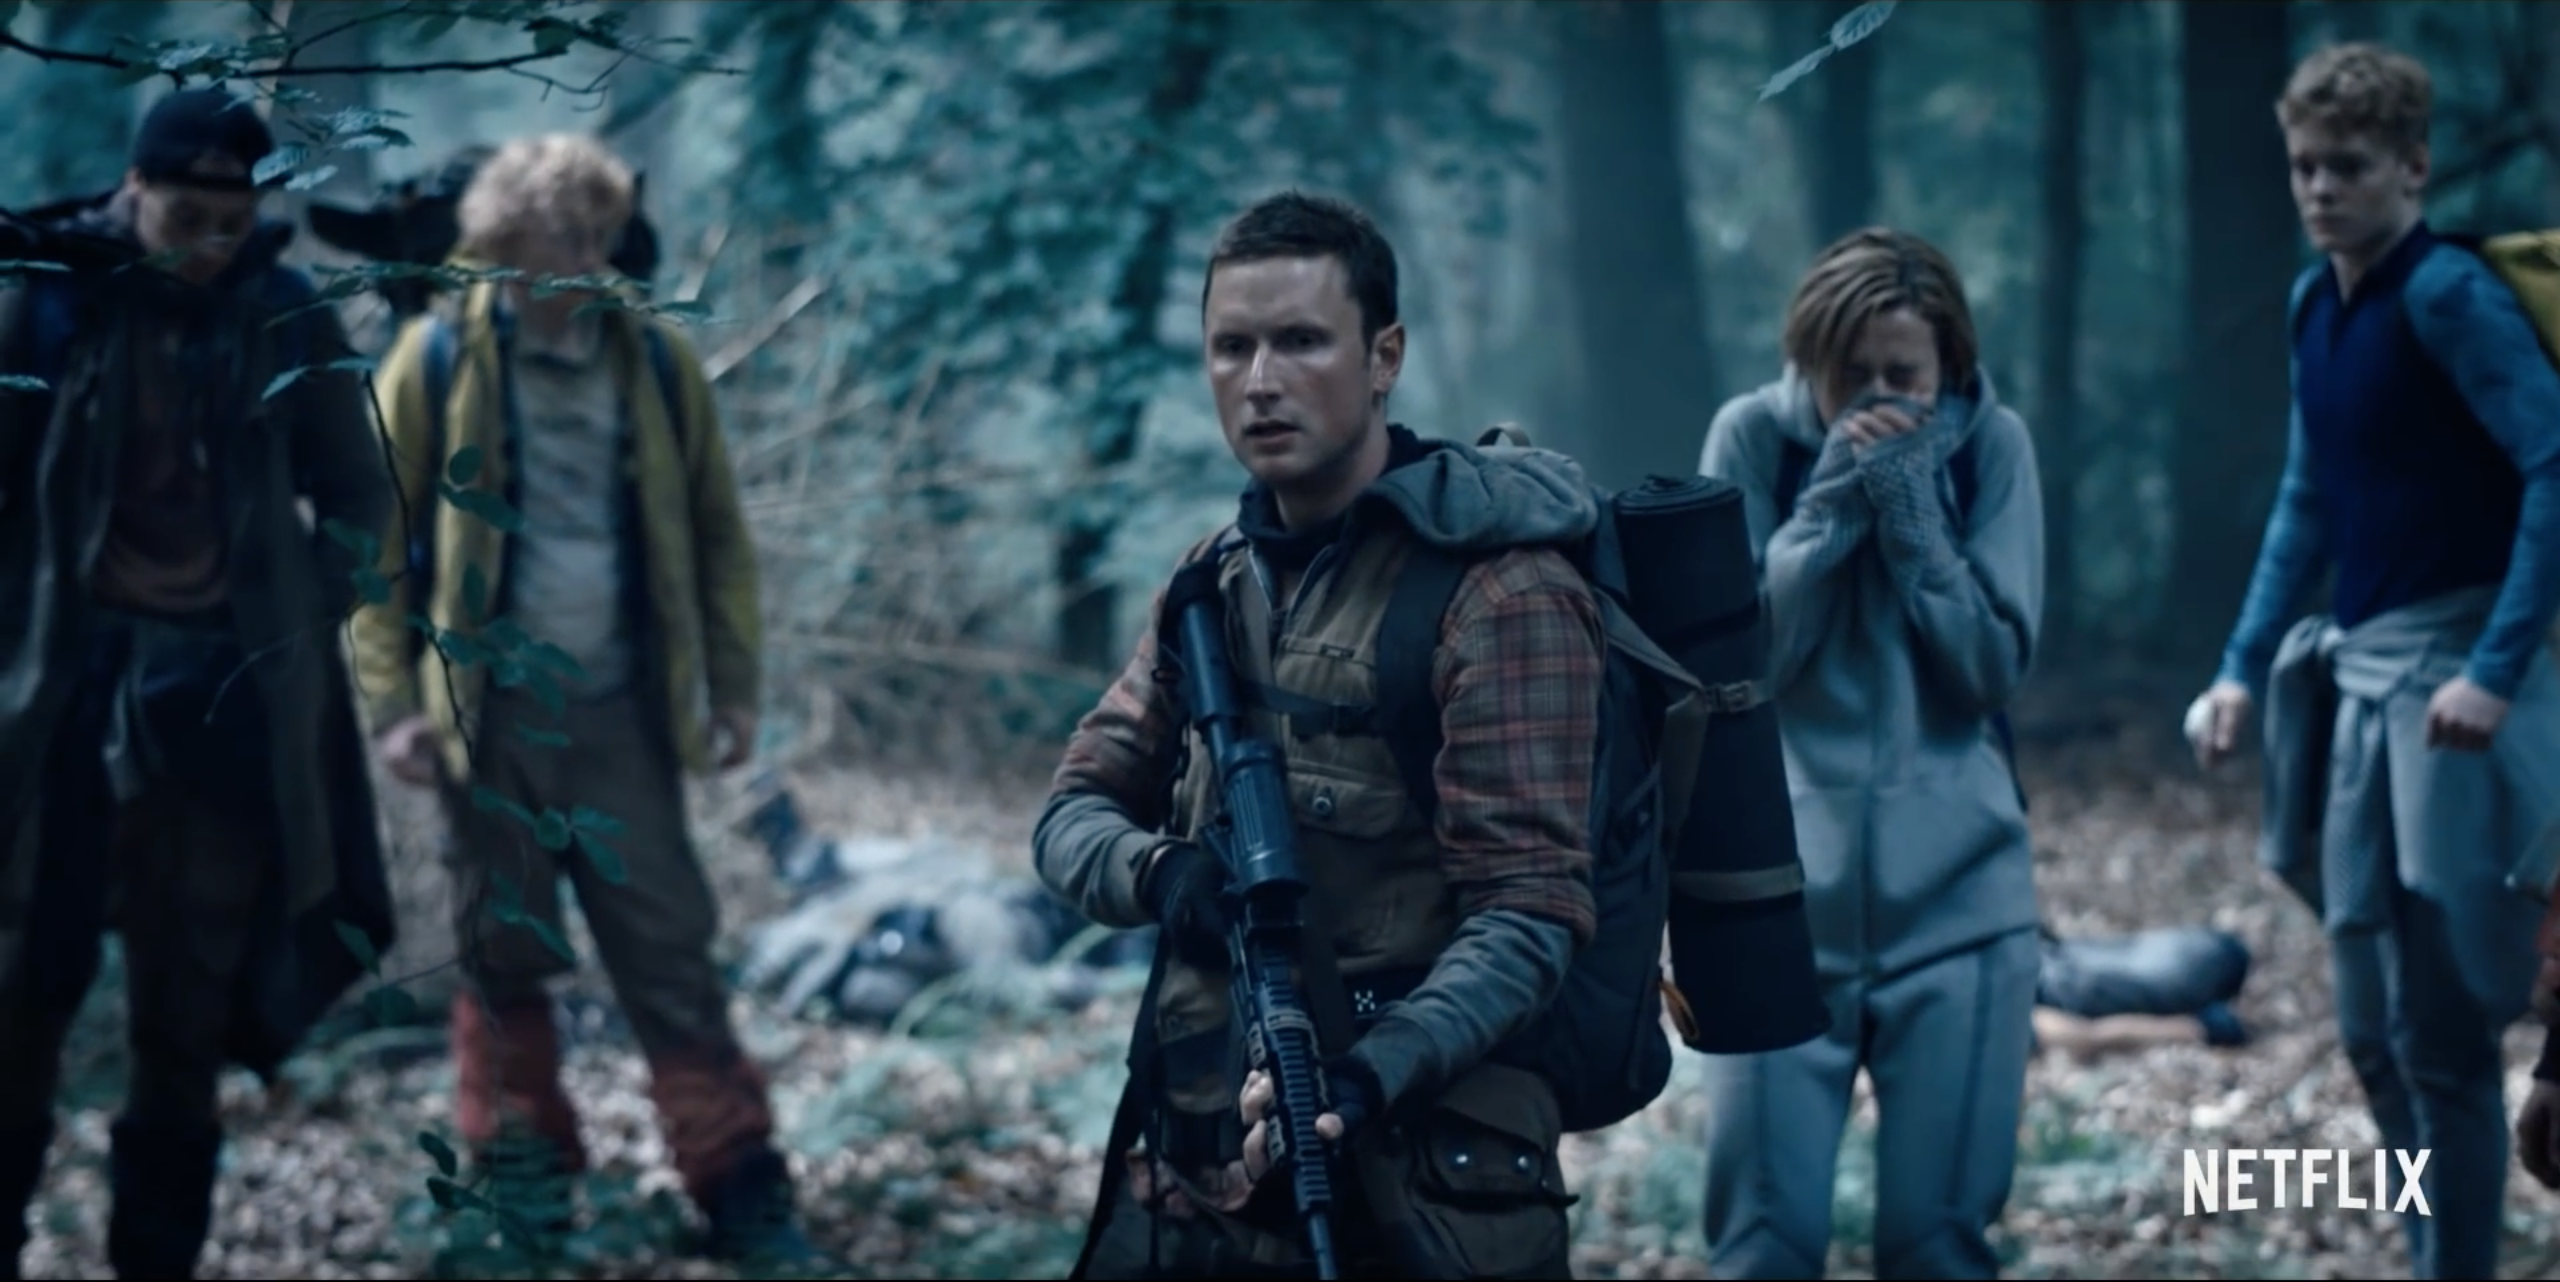 Netflix Drops Trailer for New Post-Apocalyptic Series 'The Rain'